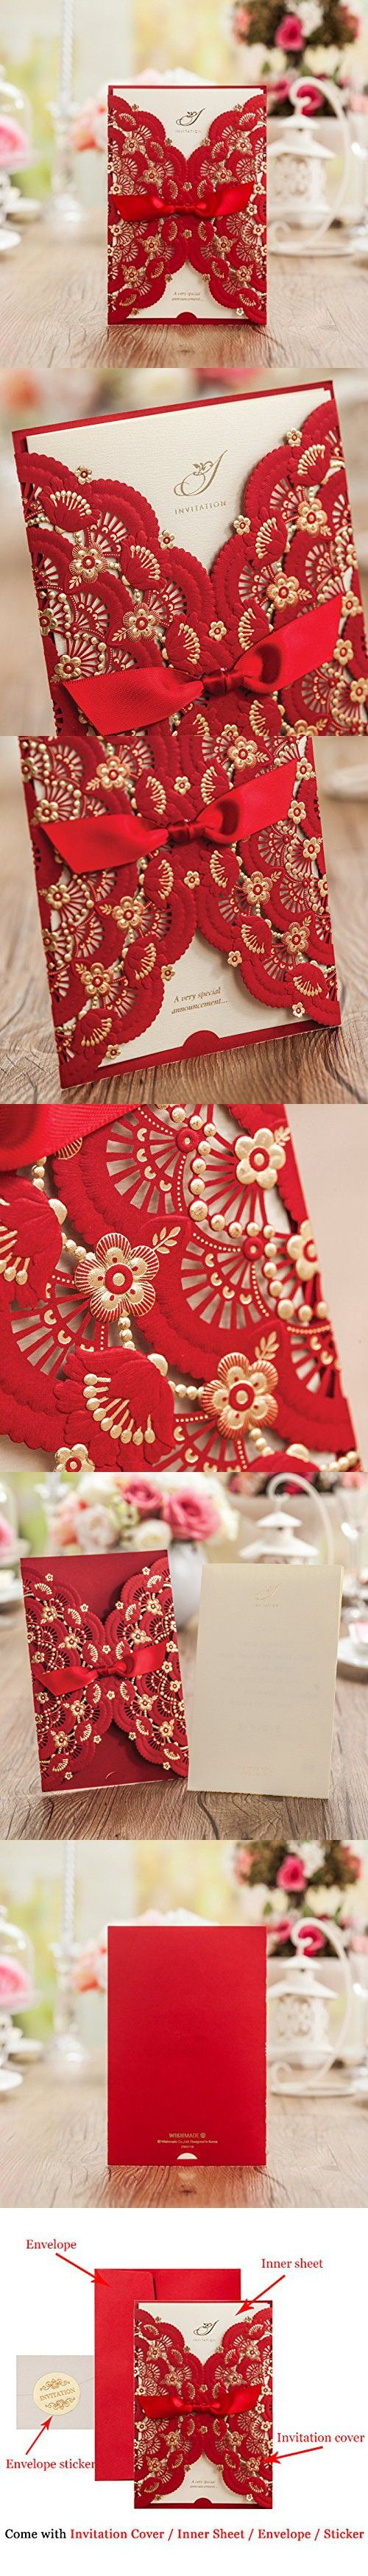 Red Lace Flower Invitation Cards Laser Cut Hollow-Out Floral with ...